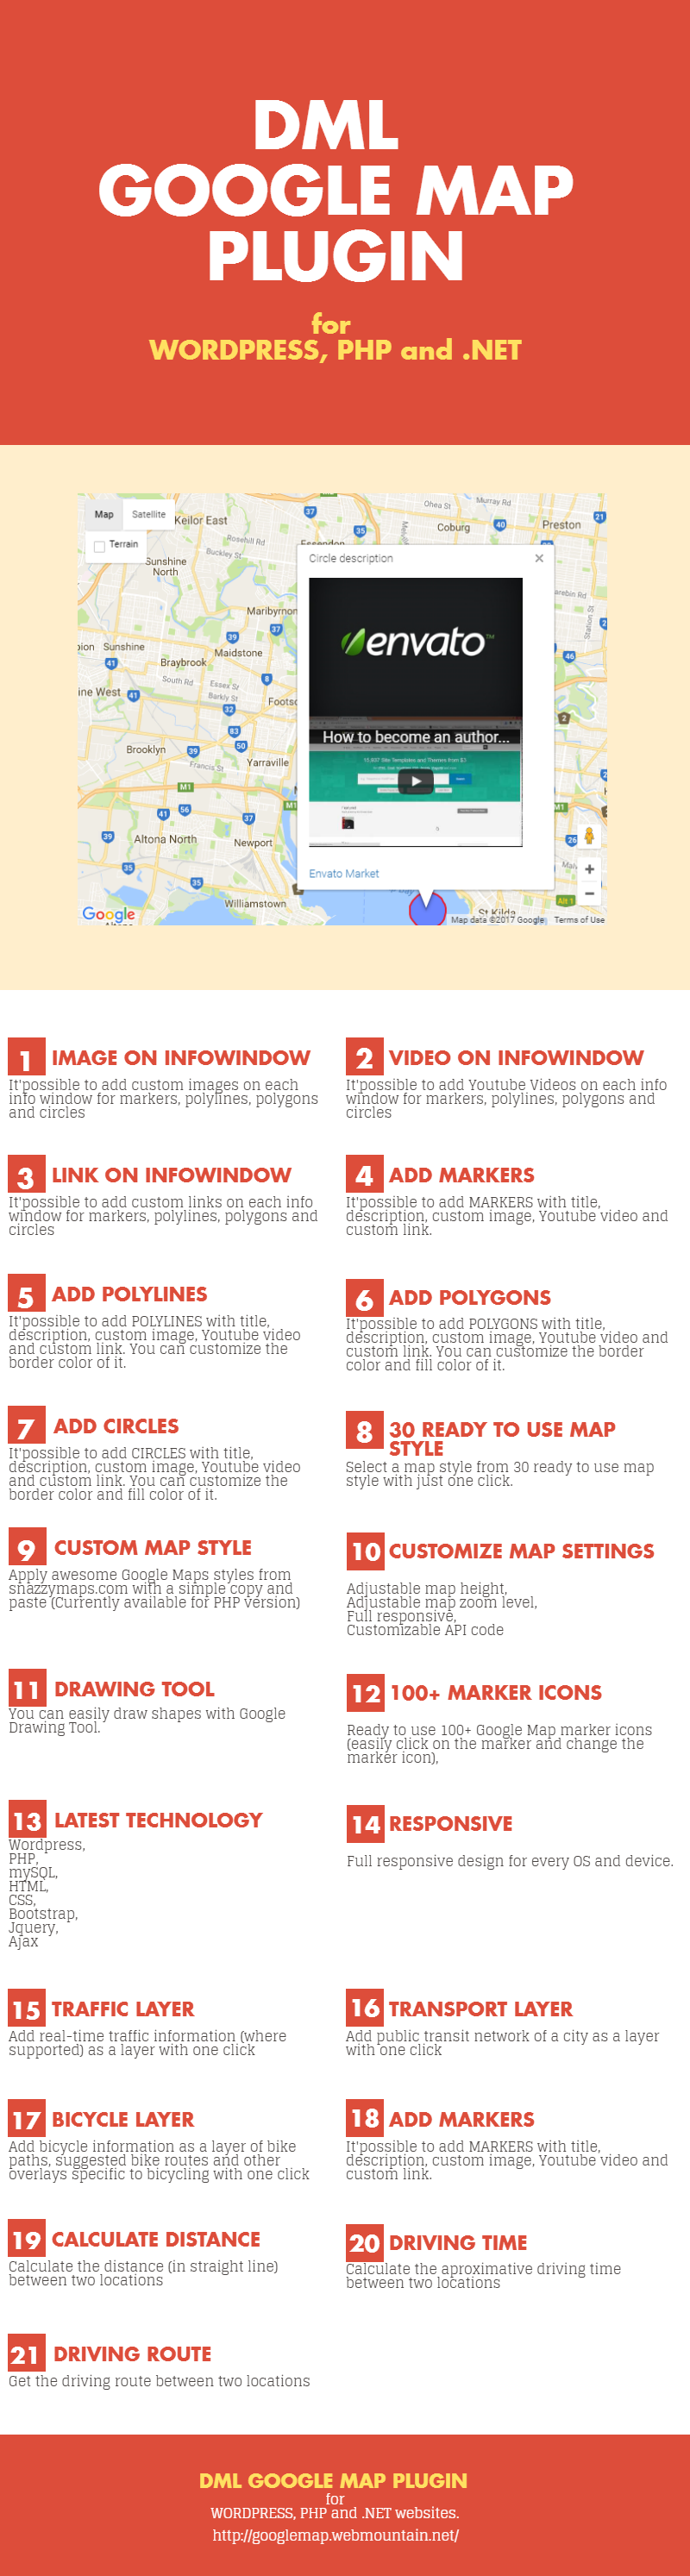 Google Map plugin for Wordpress, PHP and websites. It